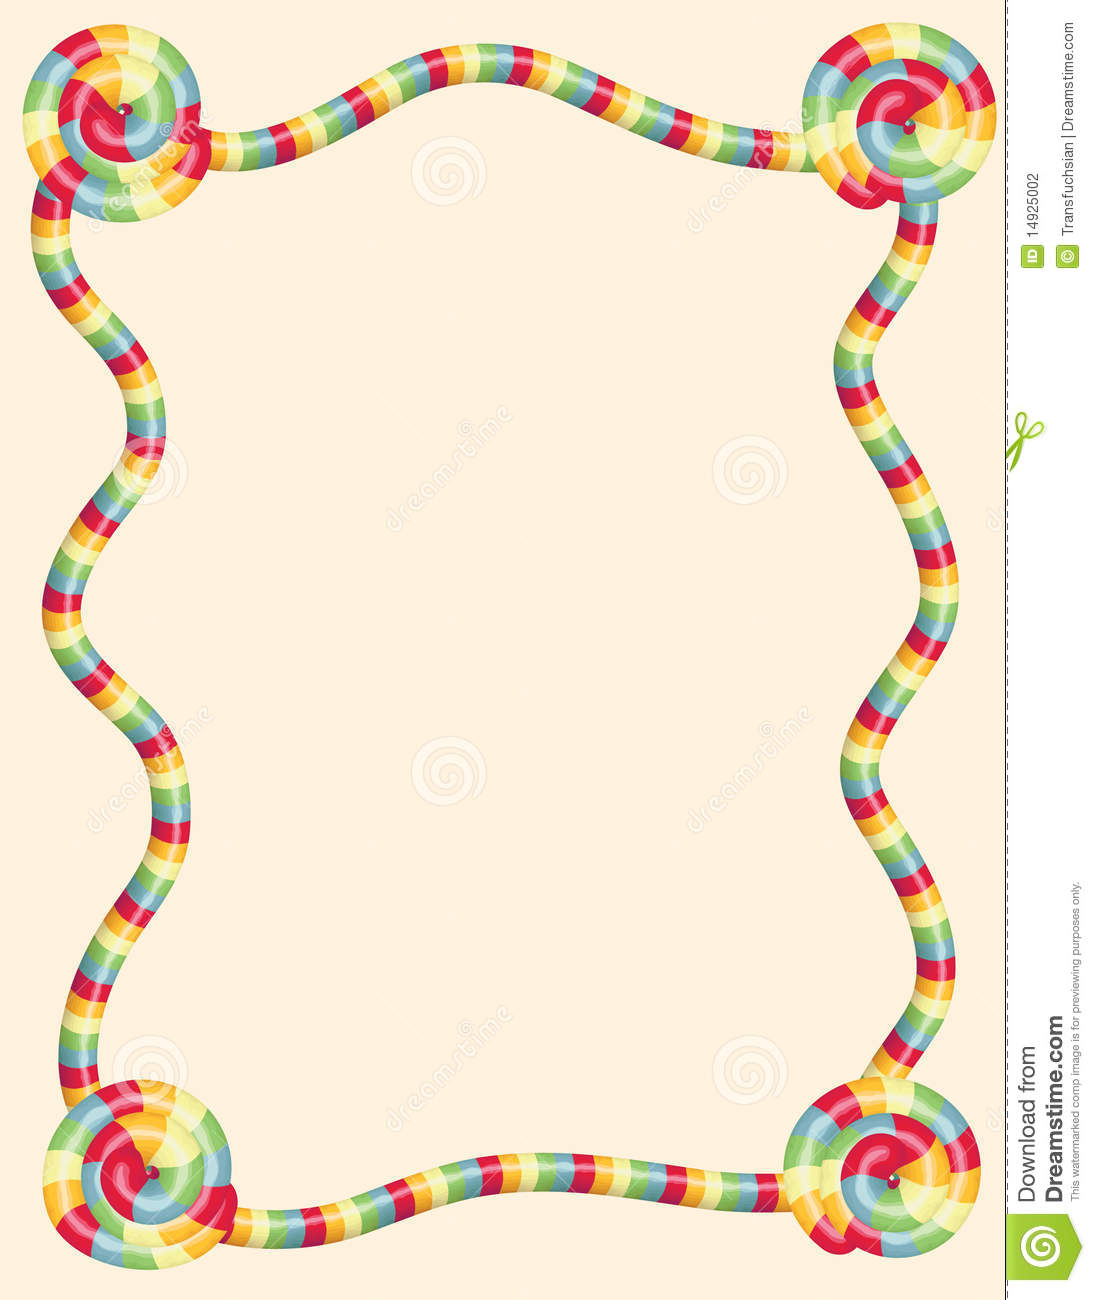 Colorful Twisted Candy Border Stock Photography - Image: 14925002